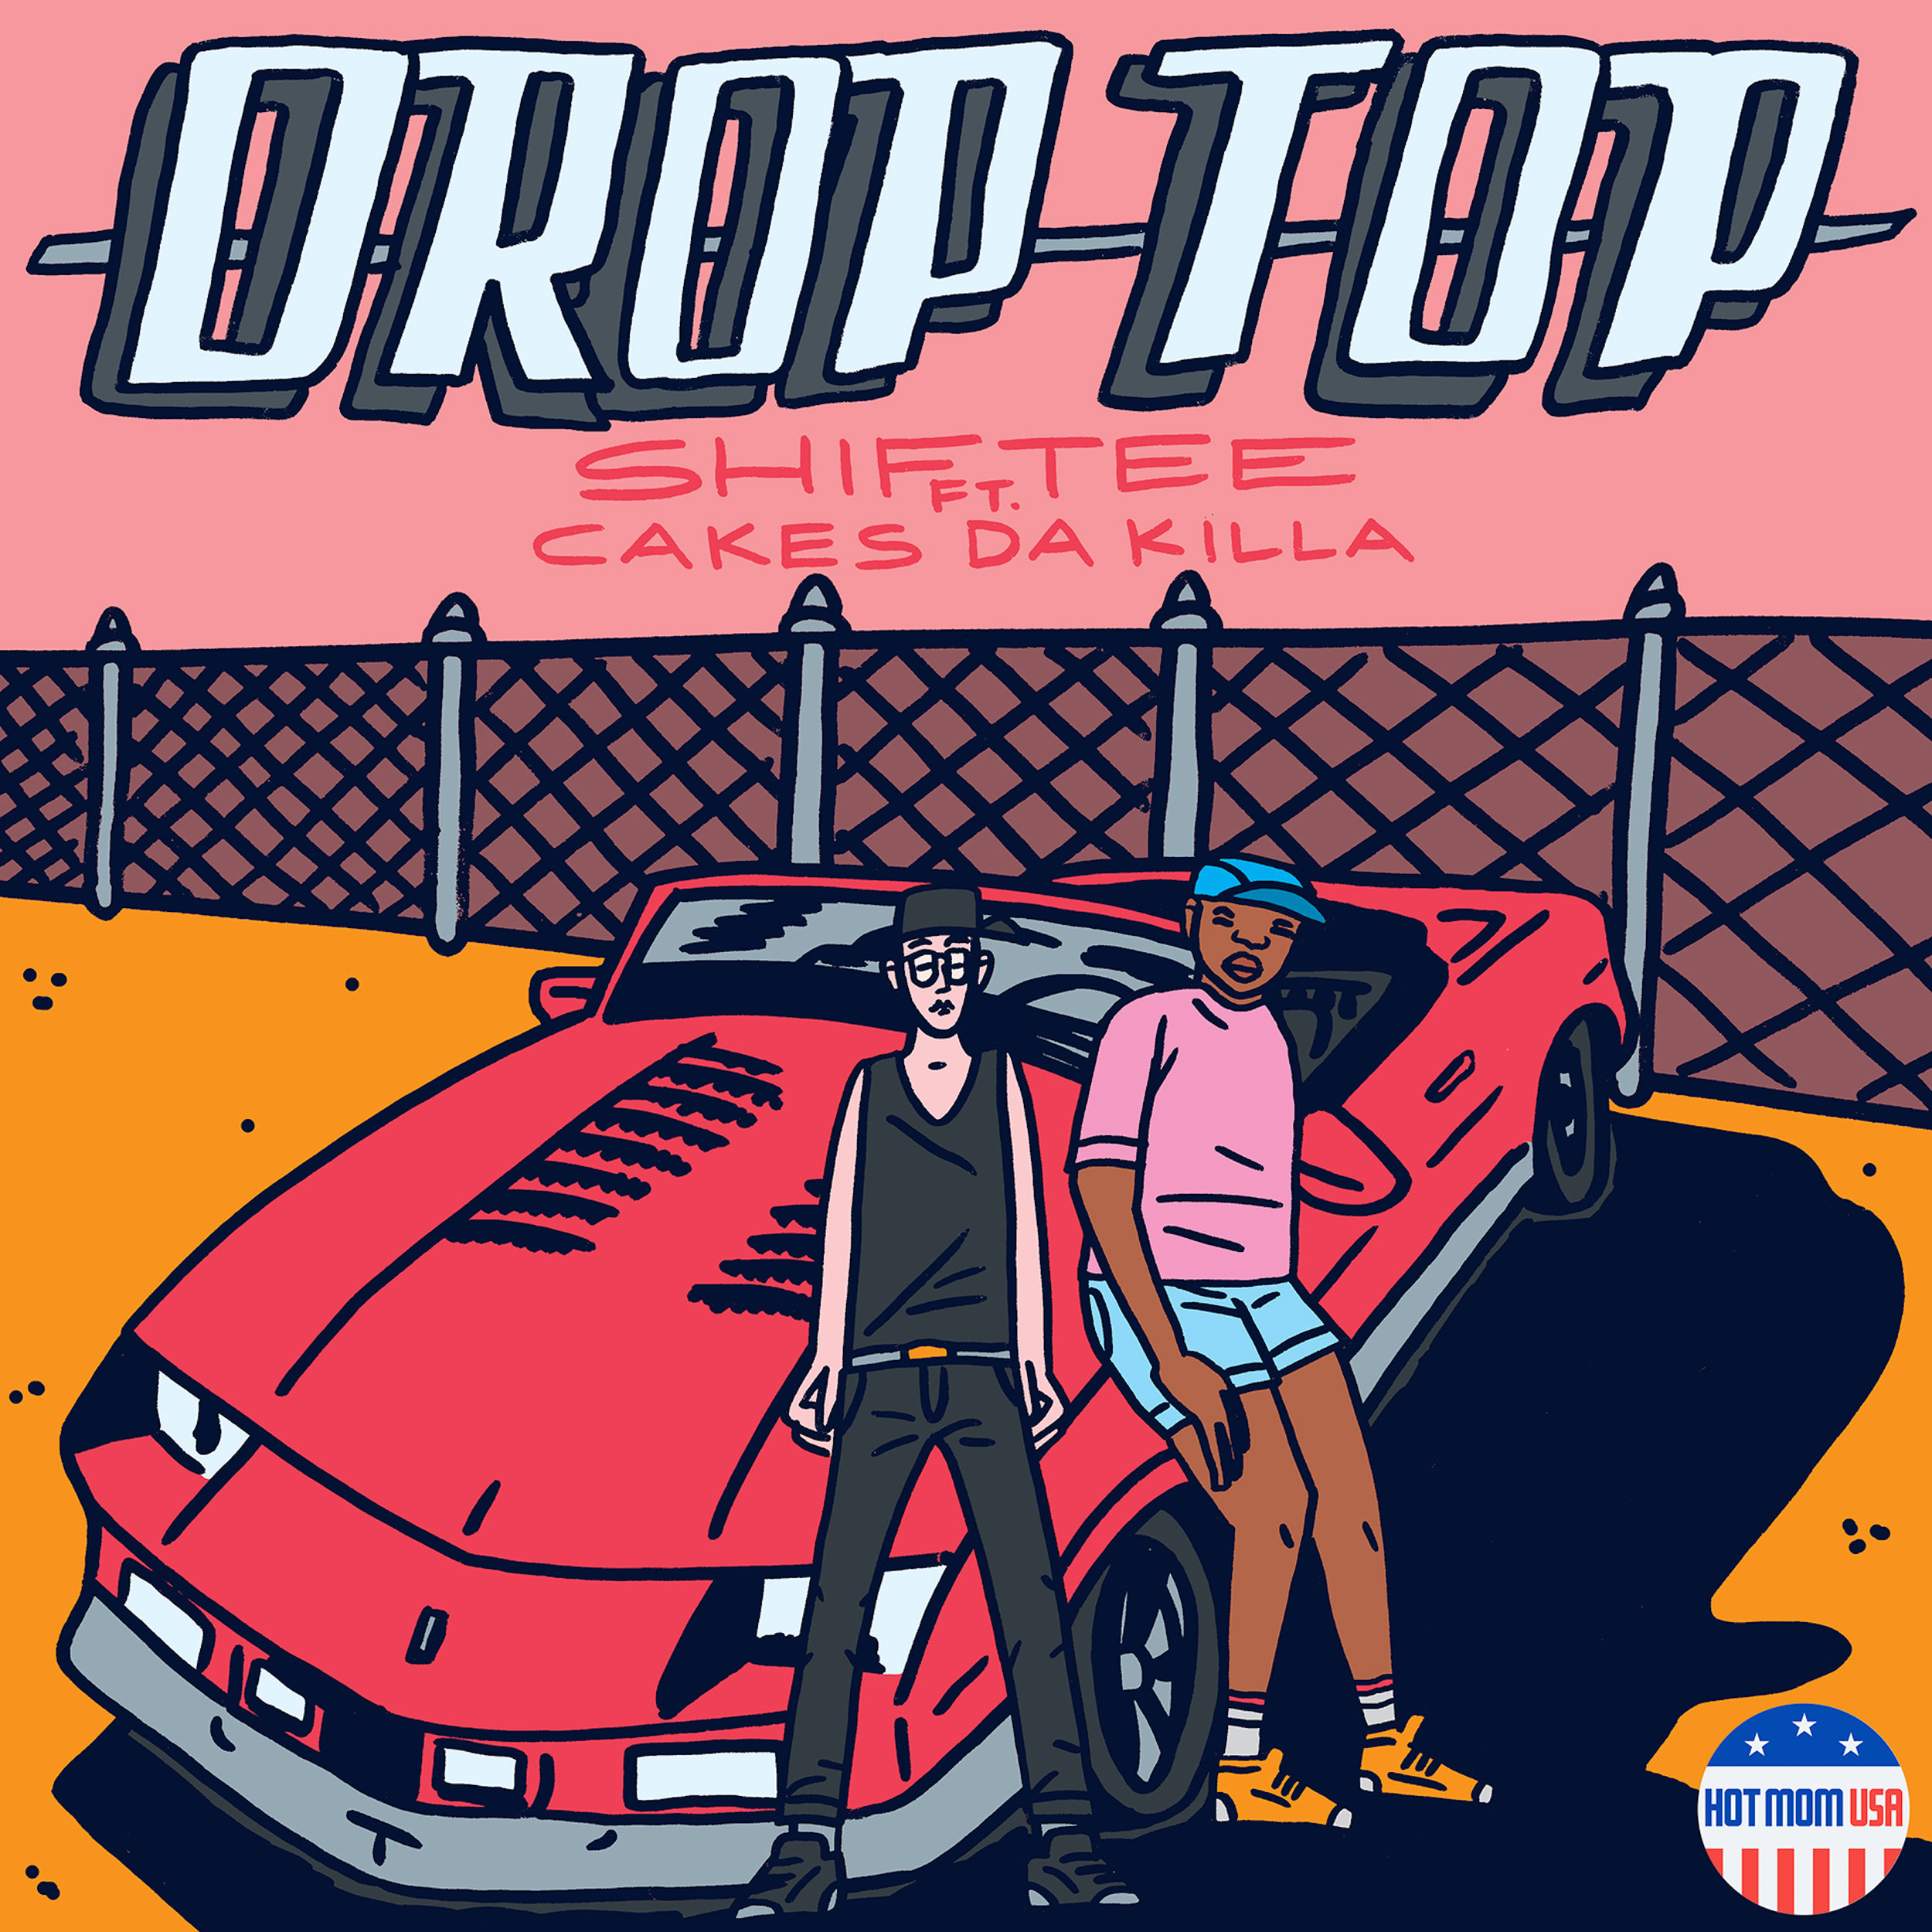 Drop Top ft. Cakes Da Killa